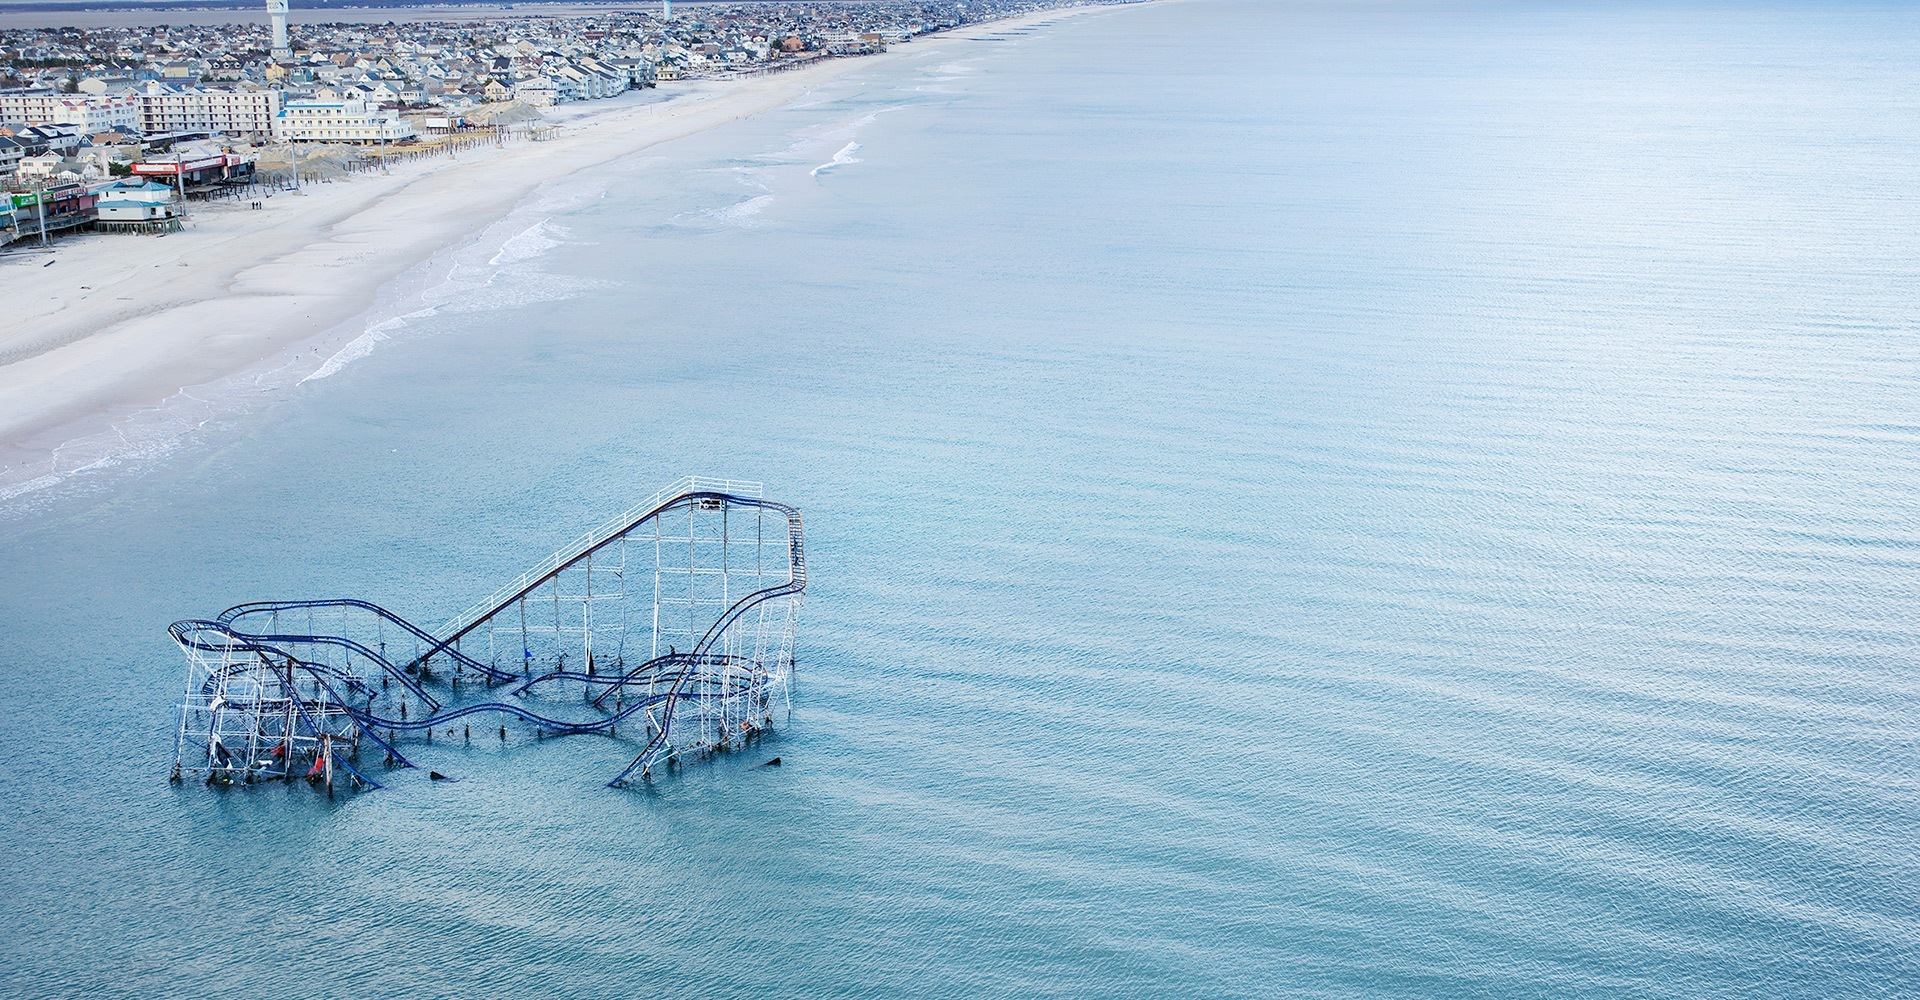 Roller Coaster after Hurricane Sandy - Seaside Heights, New Jersey